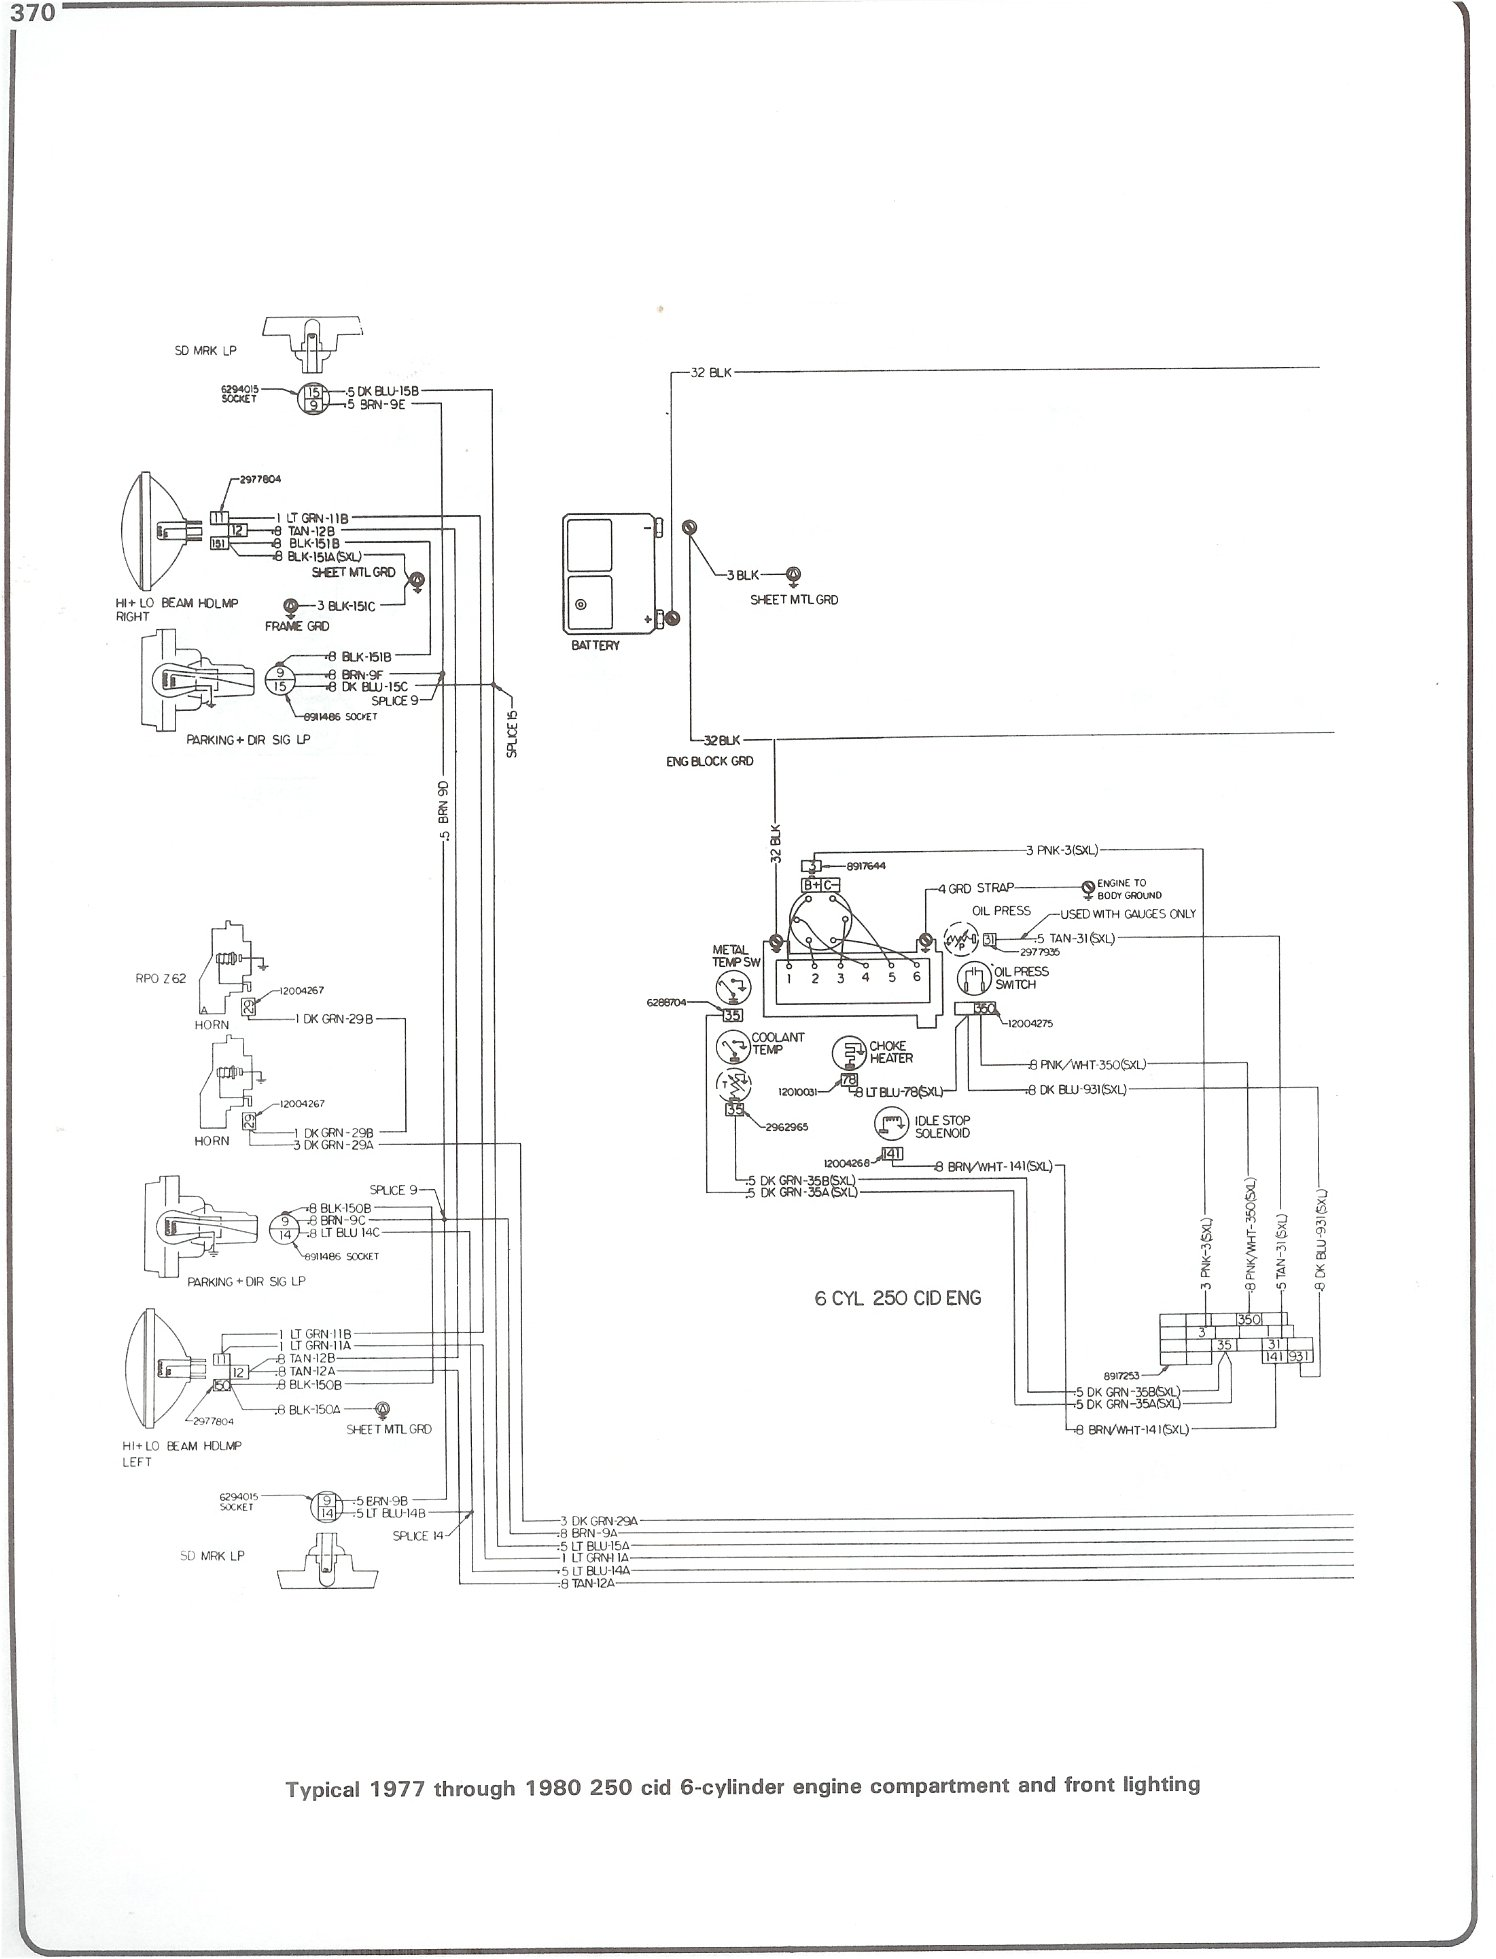 1985 Suburban Wiring Diagram - Wiring Diagram •